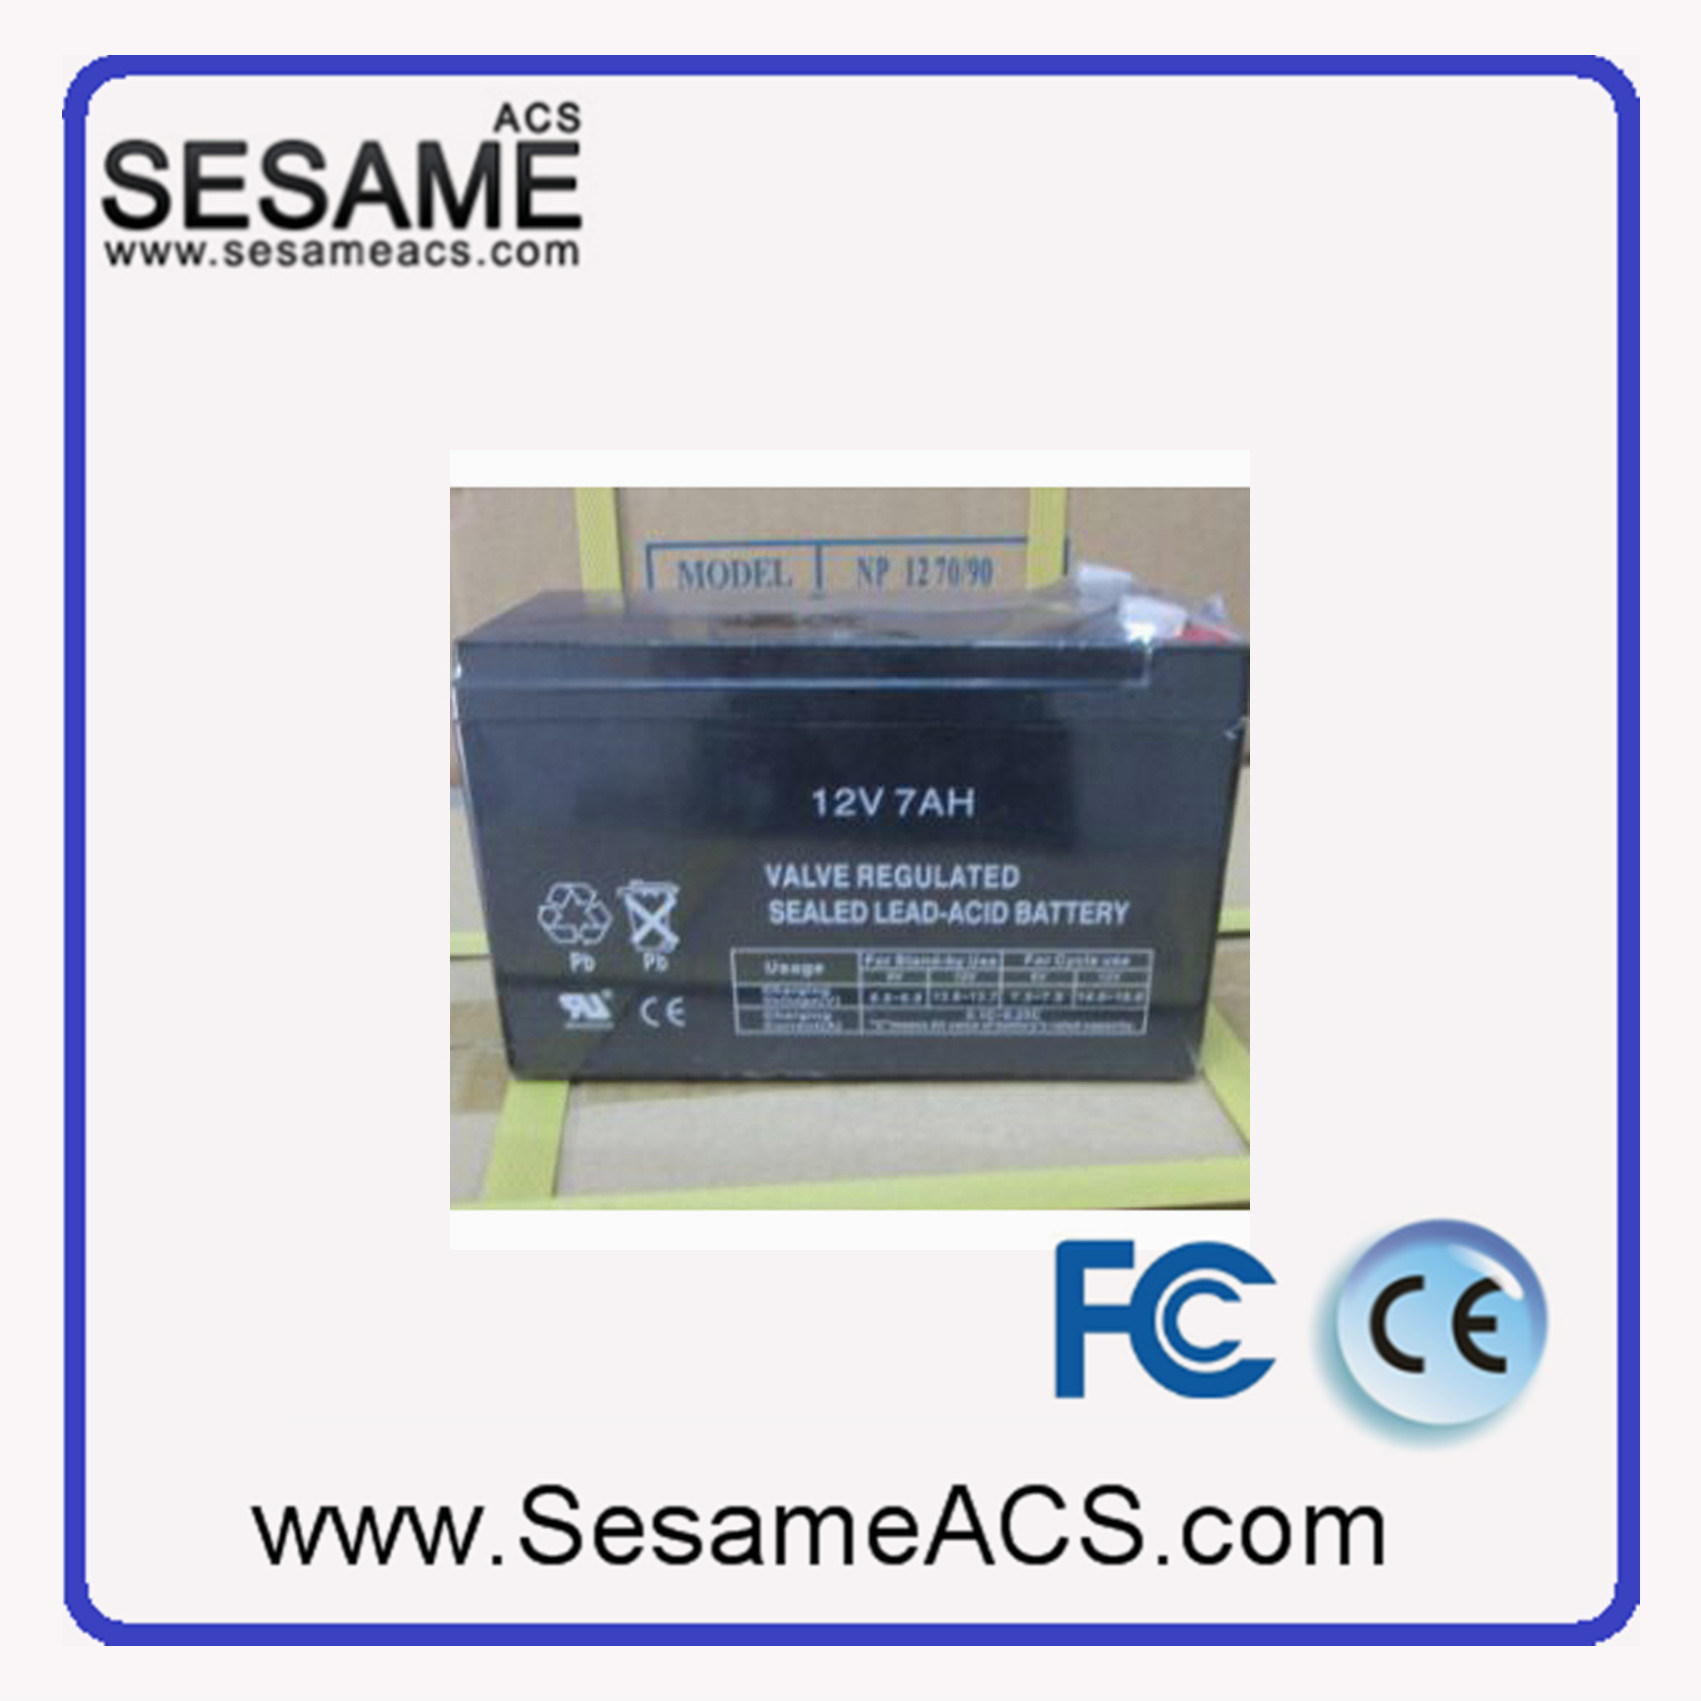 Access Control Switching Power Supply with Battery Back up 12V (KPSB-3A)